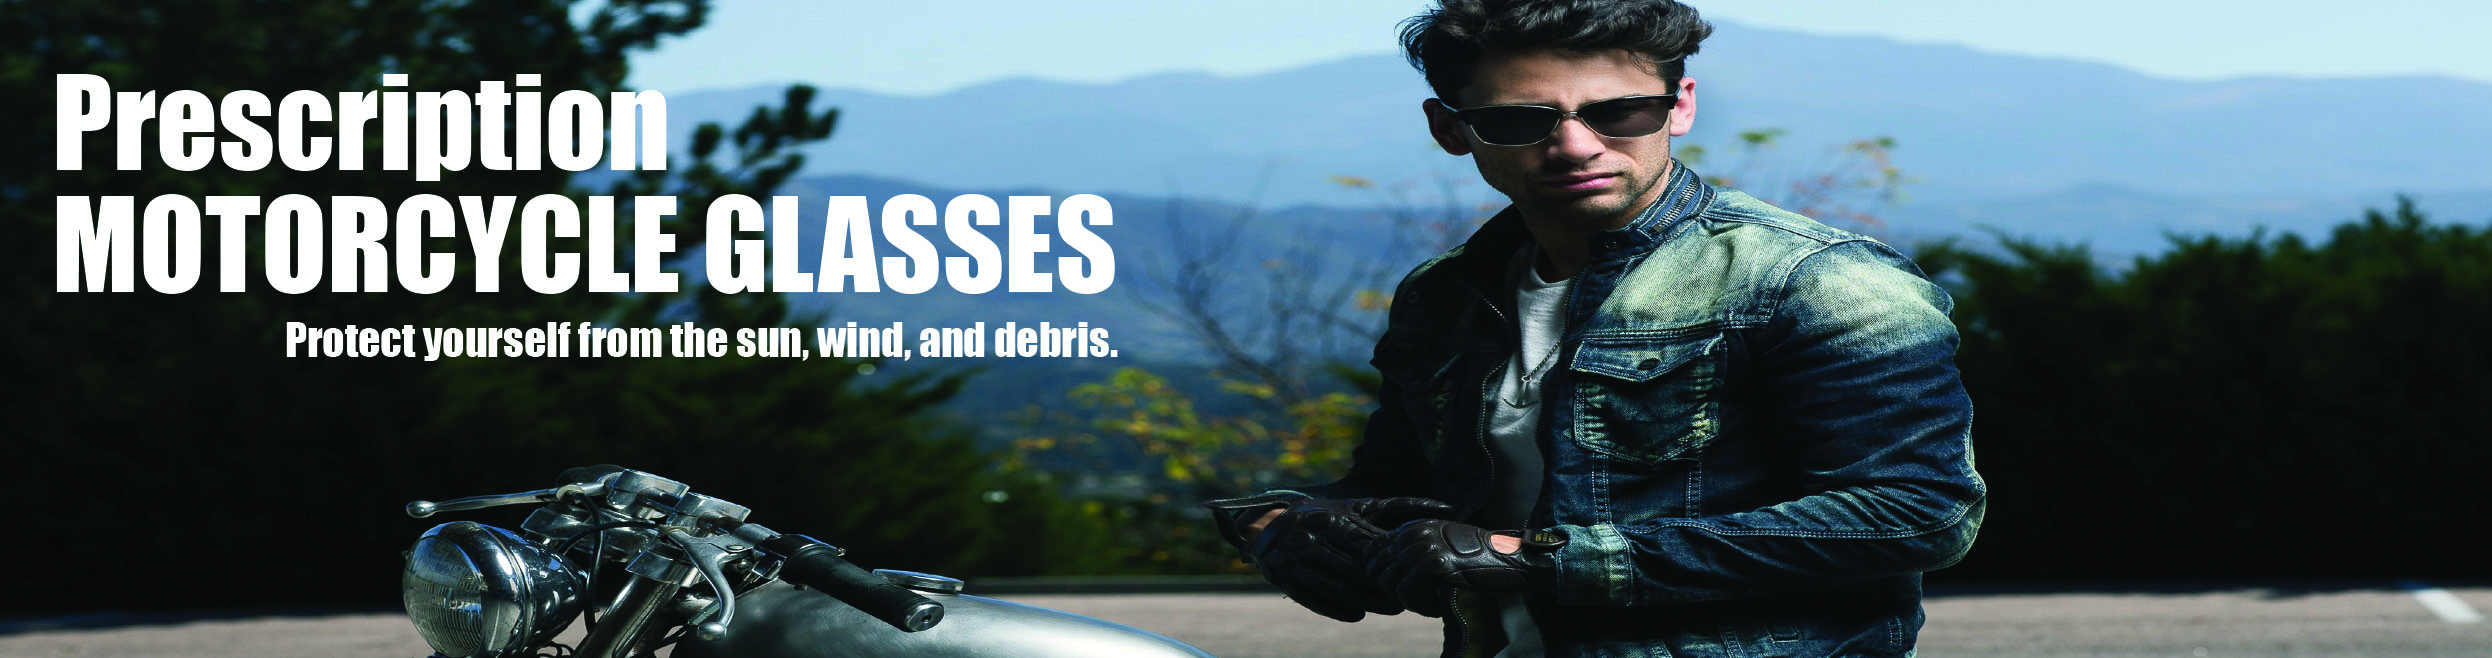 30832919d40 Anti-scratch coating makes sense if you worry about small pebbles hitting  your eyewear during off-road trips. Goggles make sense for high-speed rides  in ...